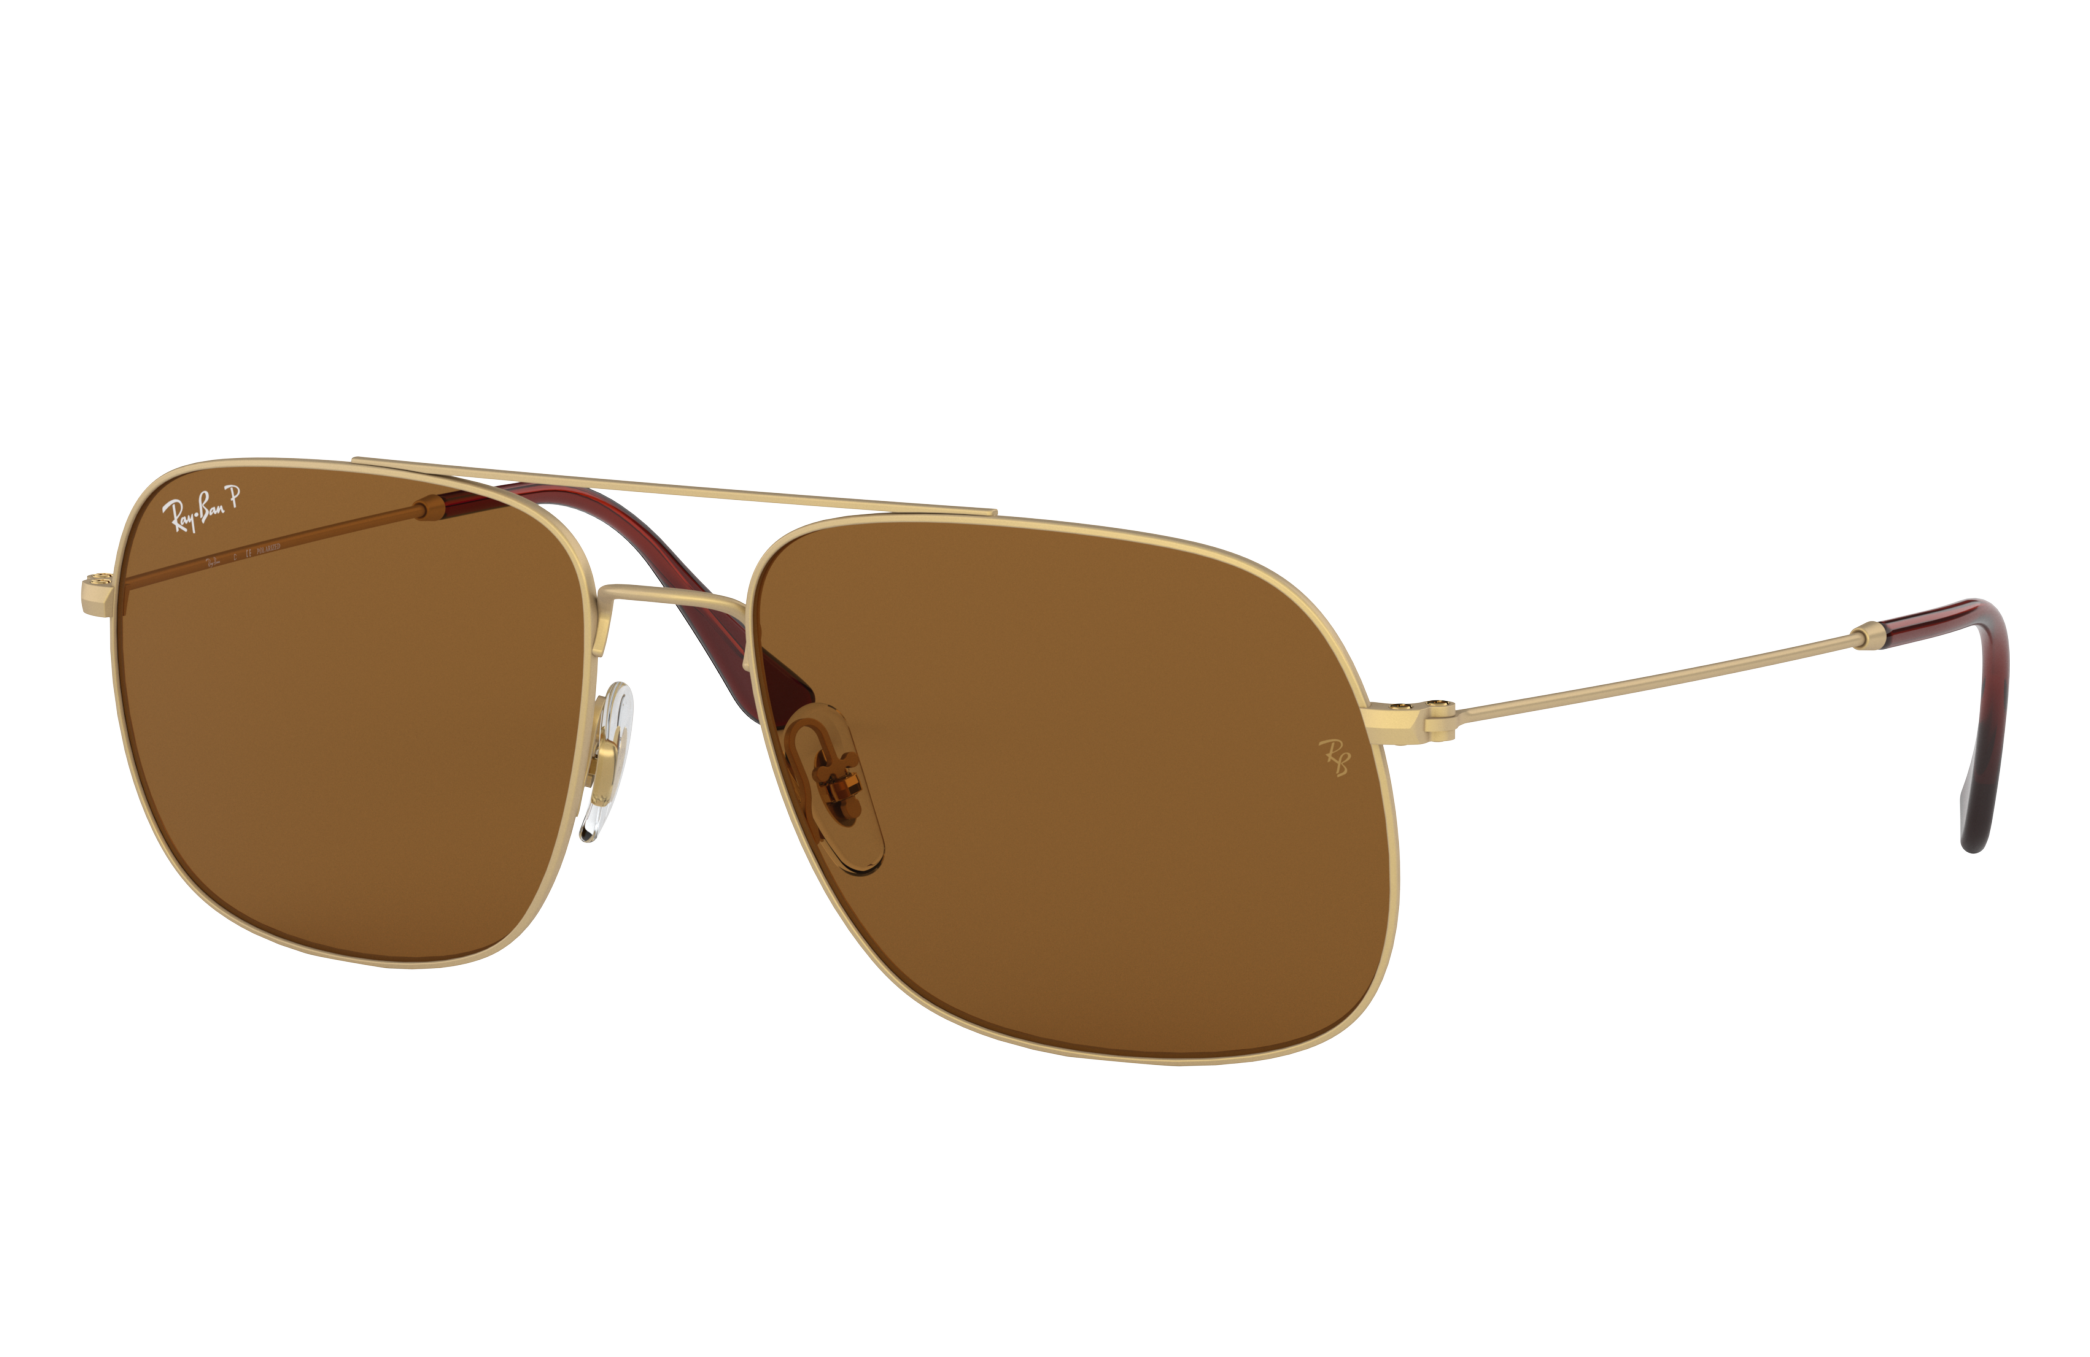 Ray-Ban Rb3595 Gold, Polarized Brown Lenses - RB3595